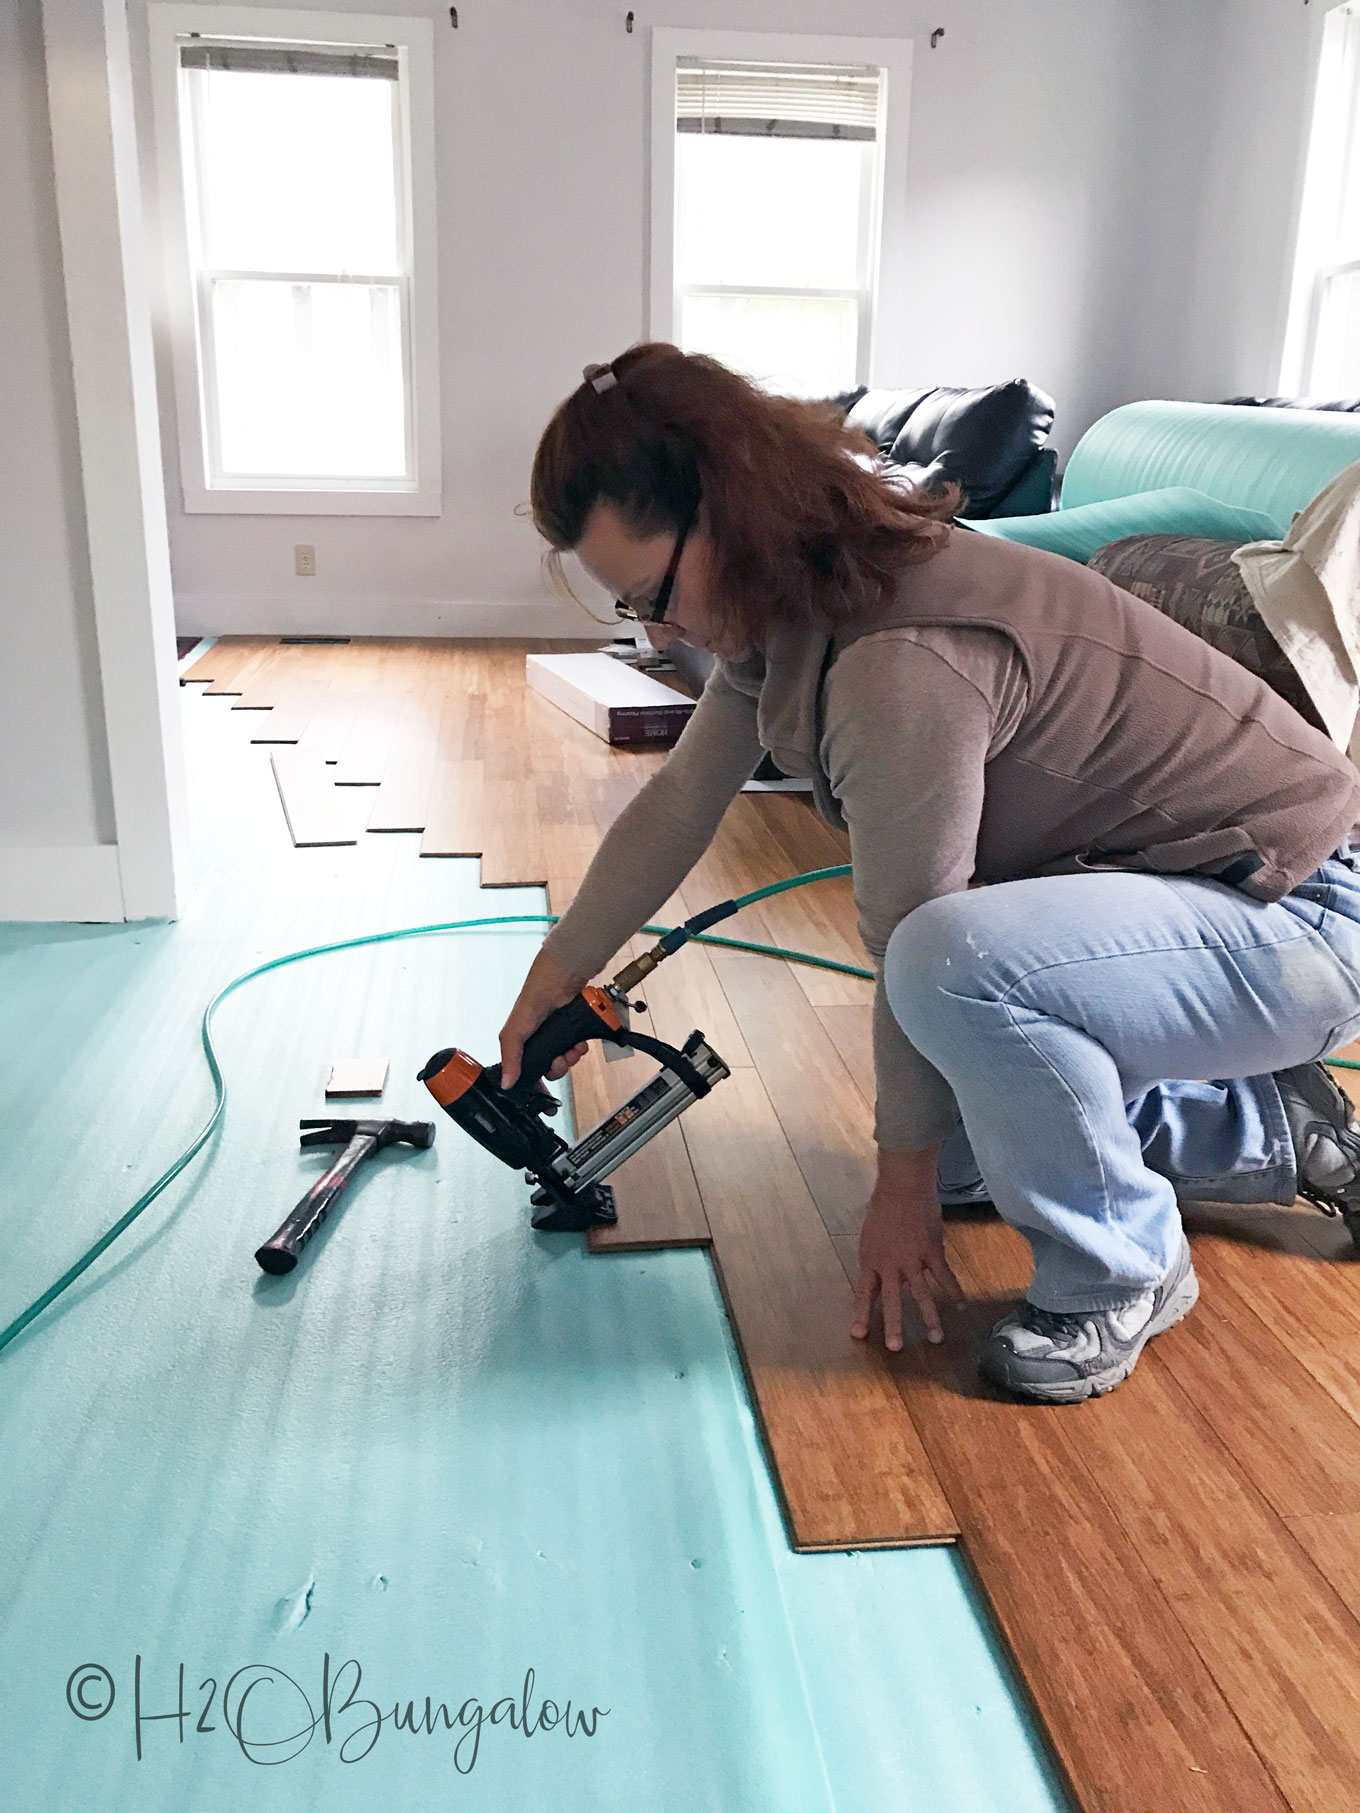 Questions to ask a handyman before hiring along with useful ideas on how to keep the cost down when hiring help for a home improvement project.